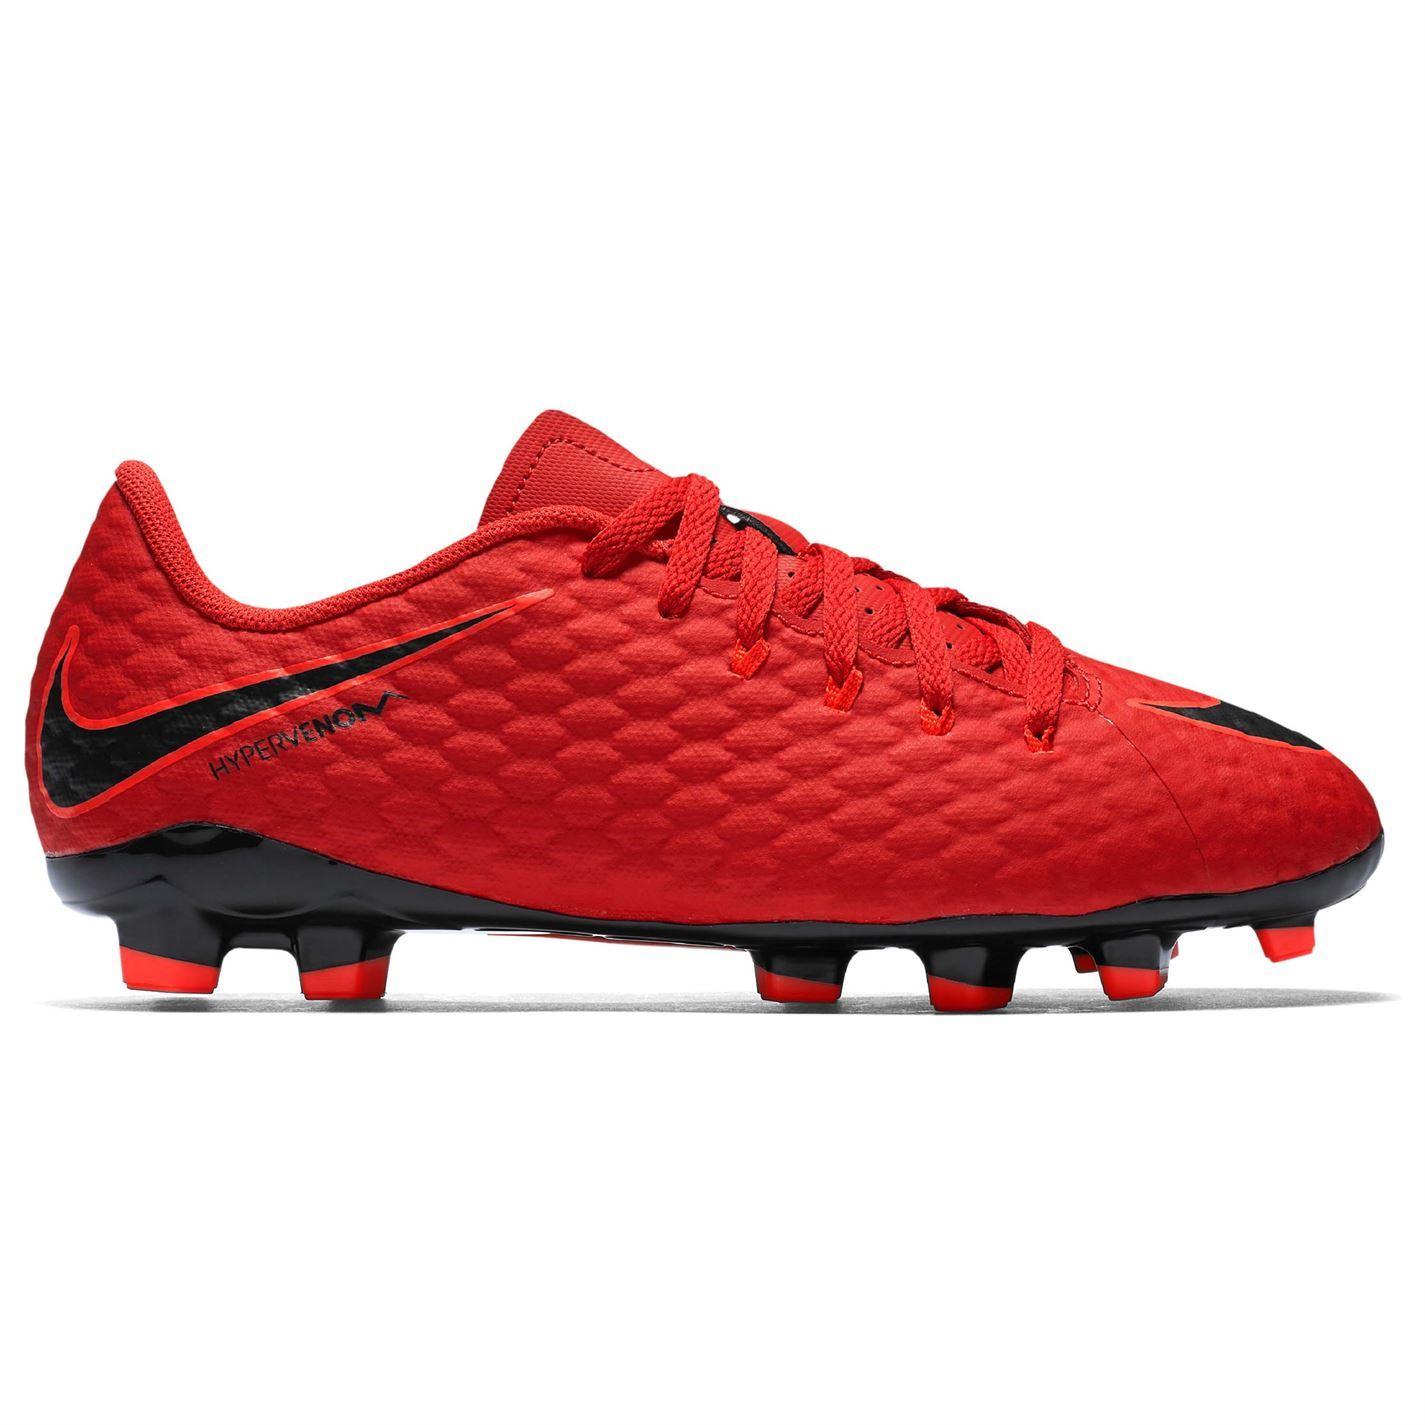 c99140ca017c ... Nike Hypervenom Phelon FG Firm Ground Football Boots Childs Red Soccer  Cleats ...